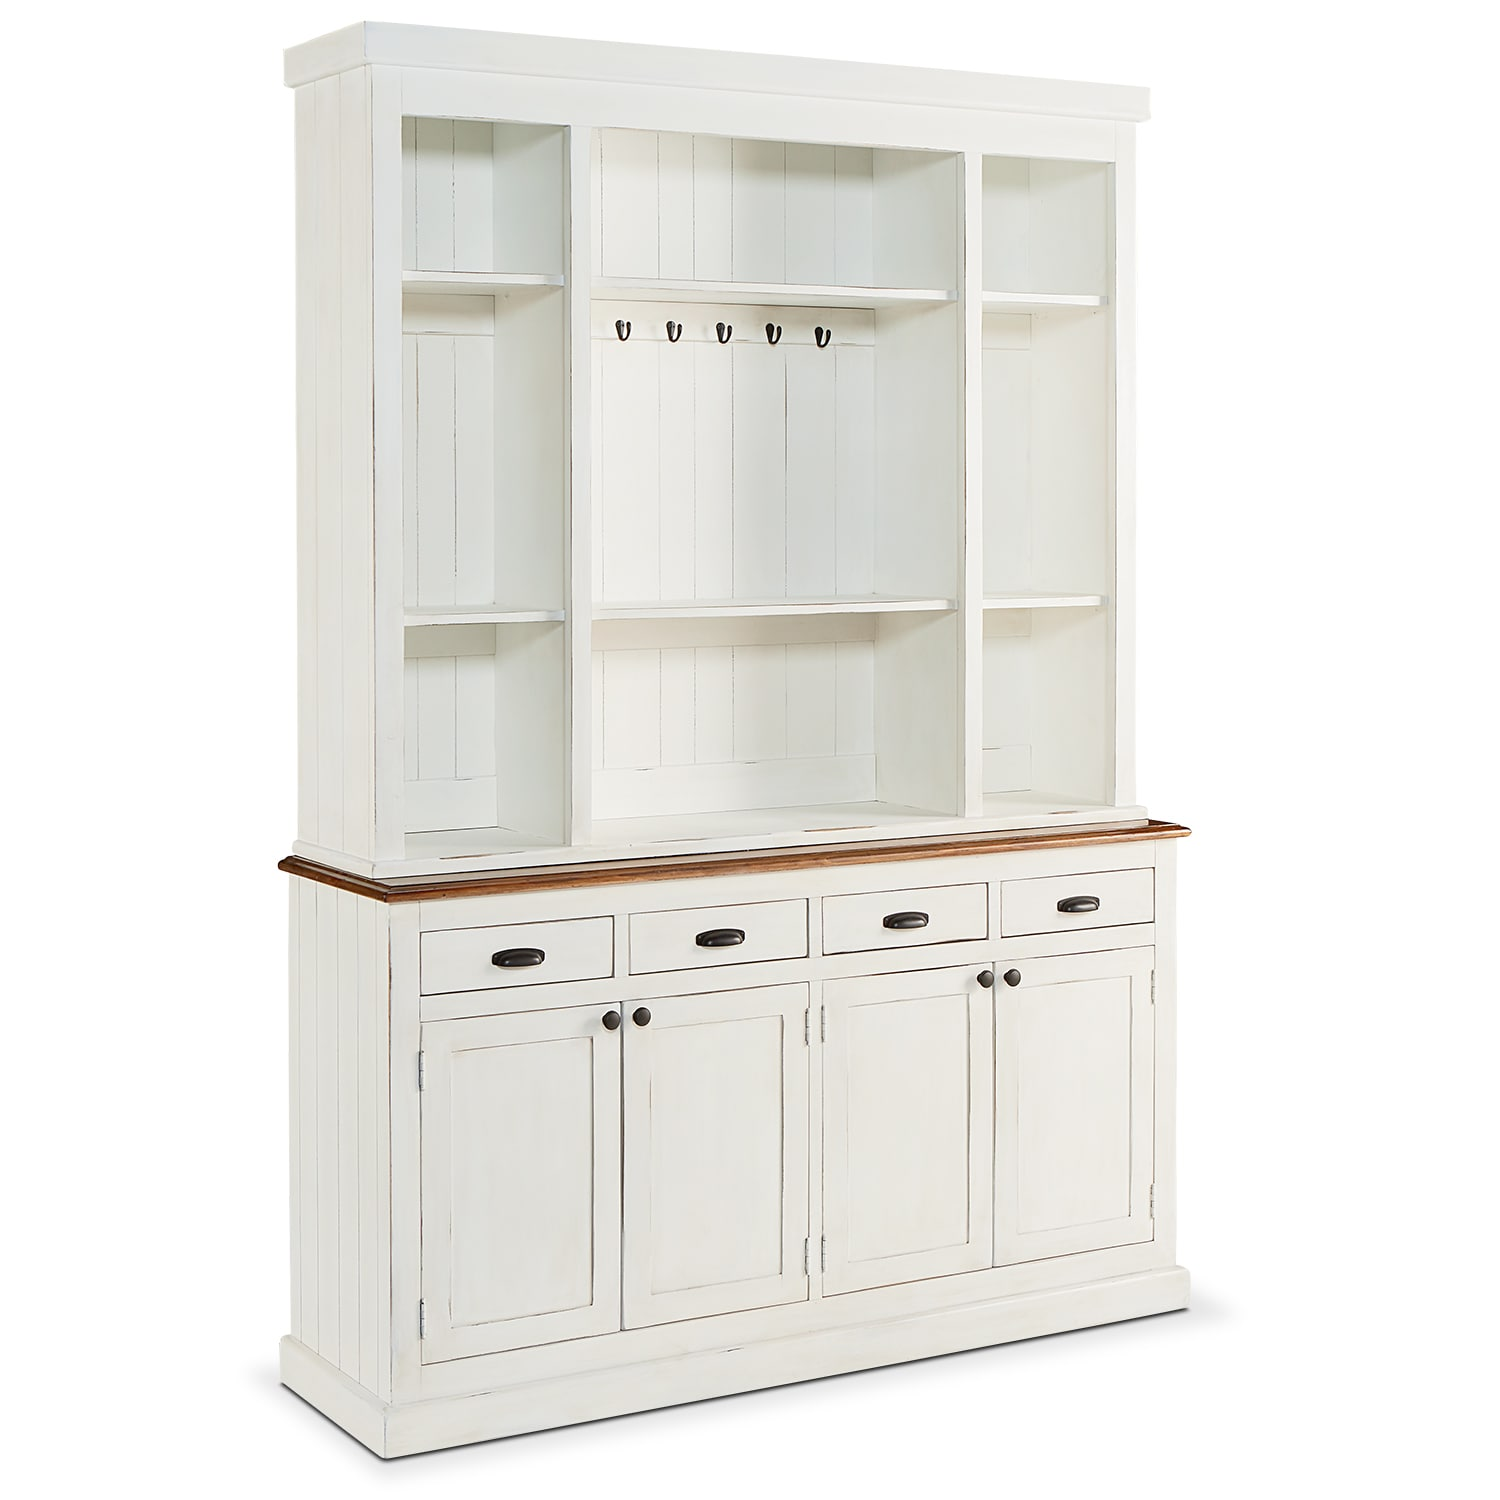 Accent and Occasional Furniture - Baker's Pantry